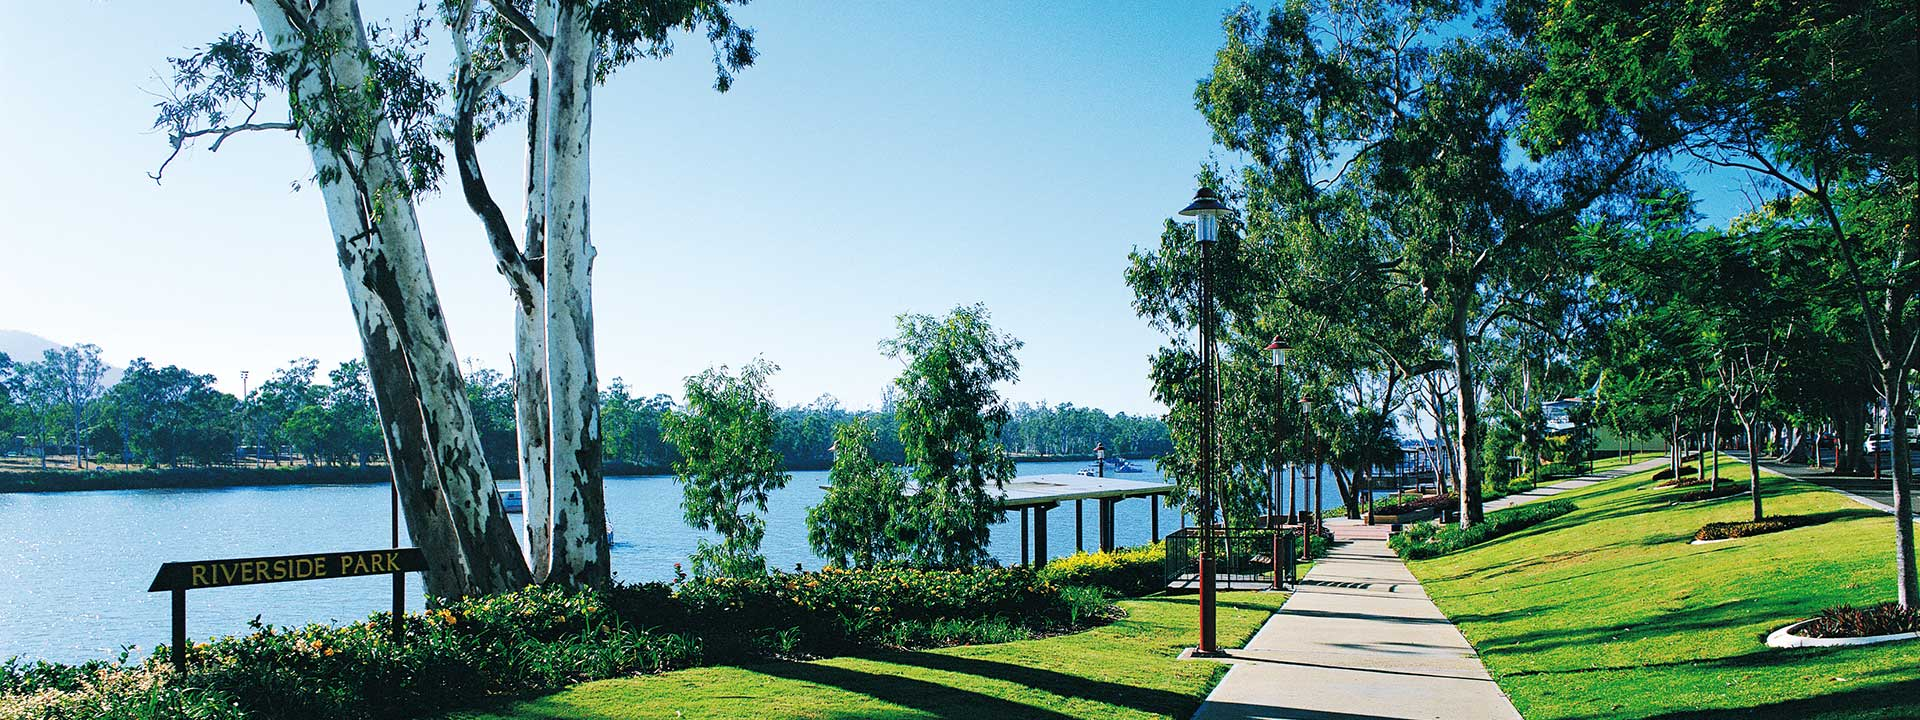 Your afternoon stroll just got better at Riverside Park, Capricorn